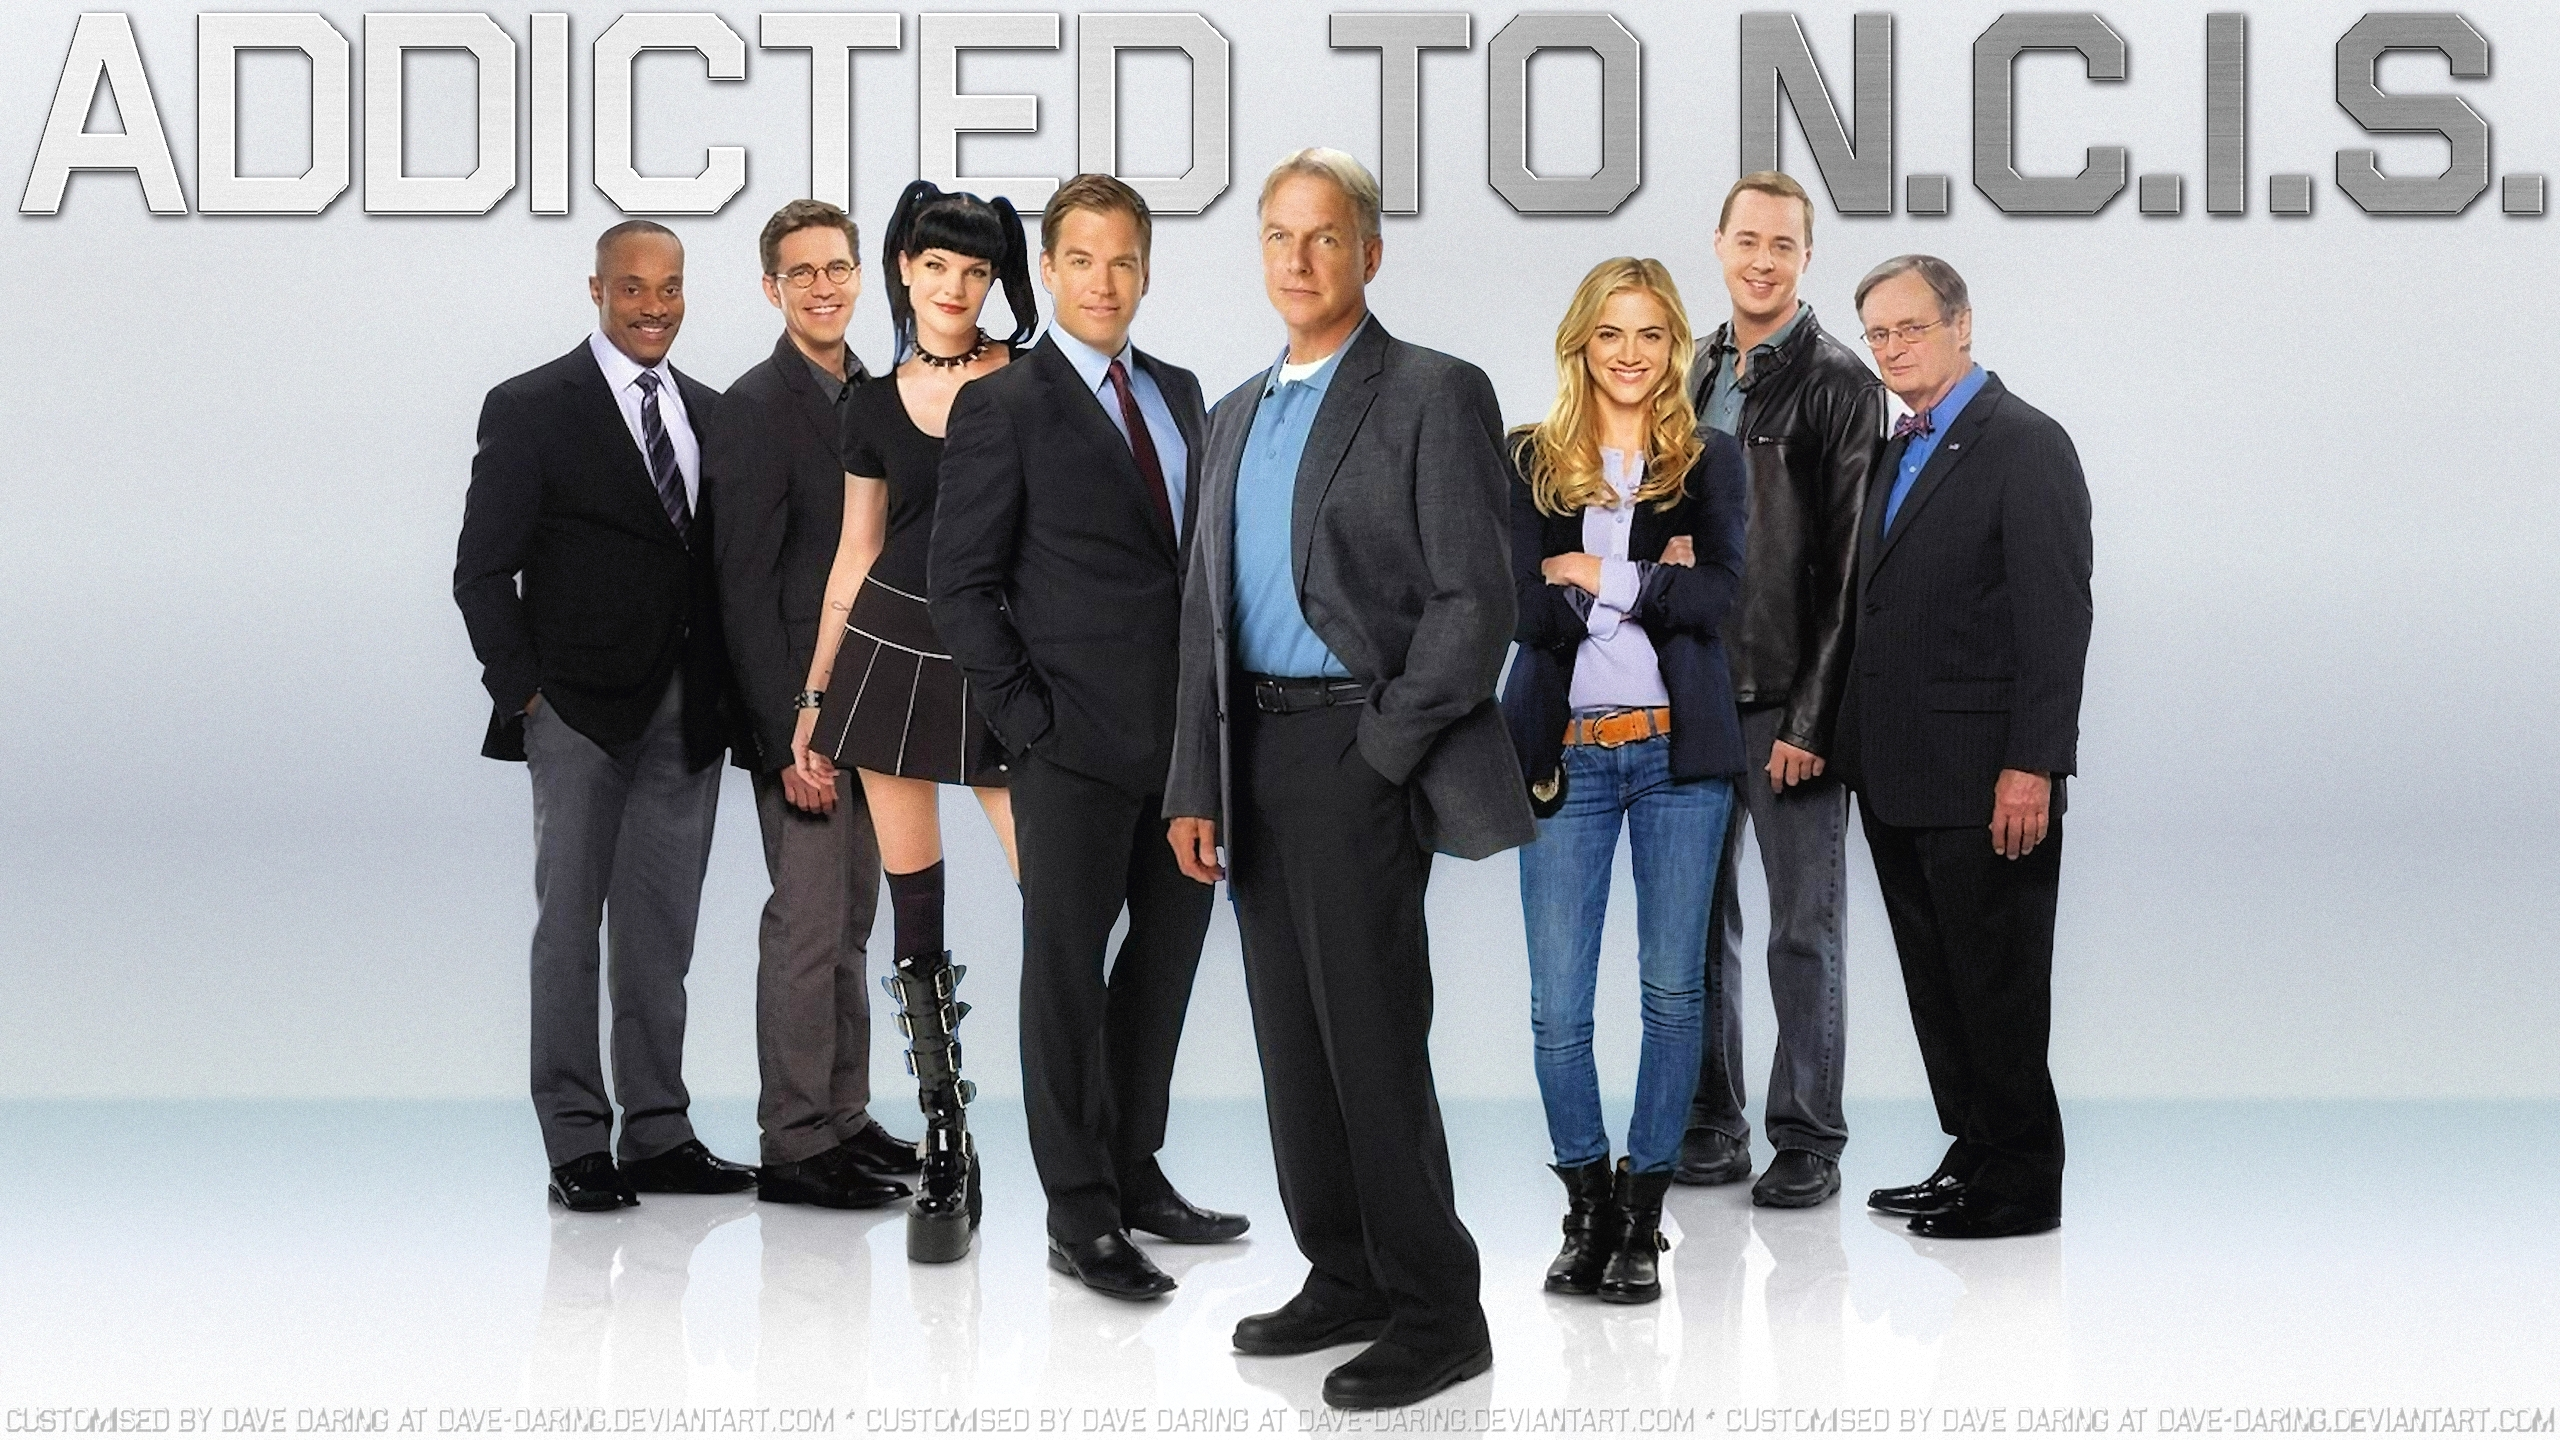 ncis season 12 team by davedaring on deviantart